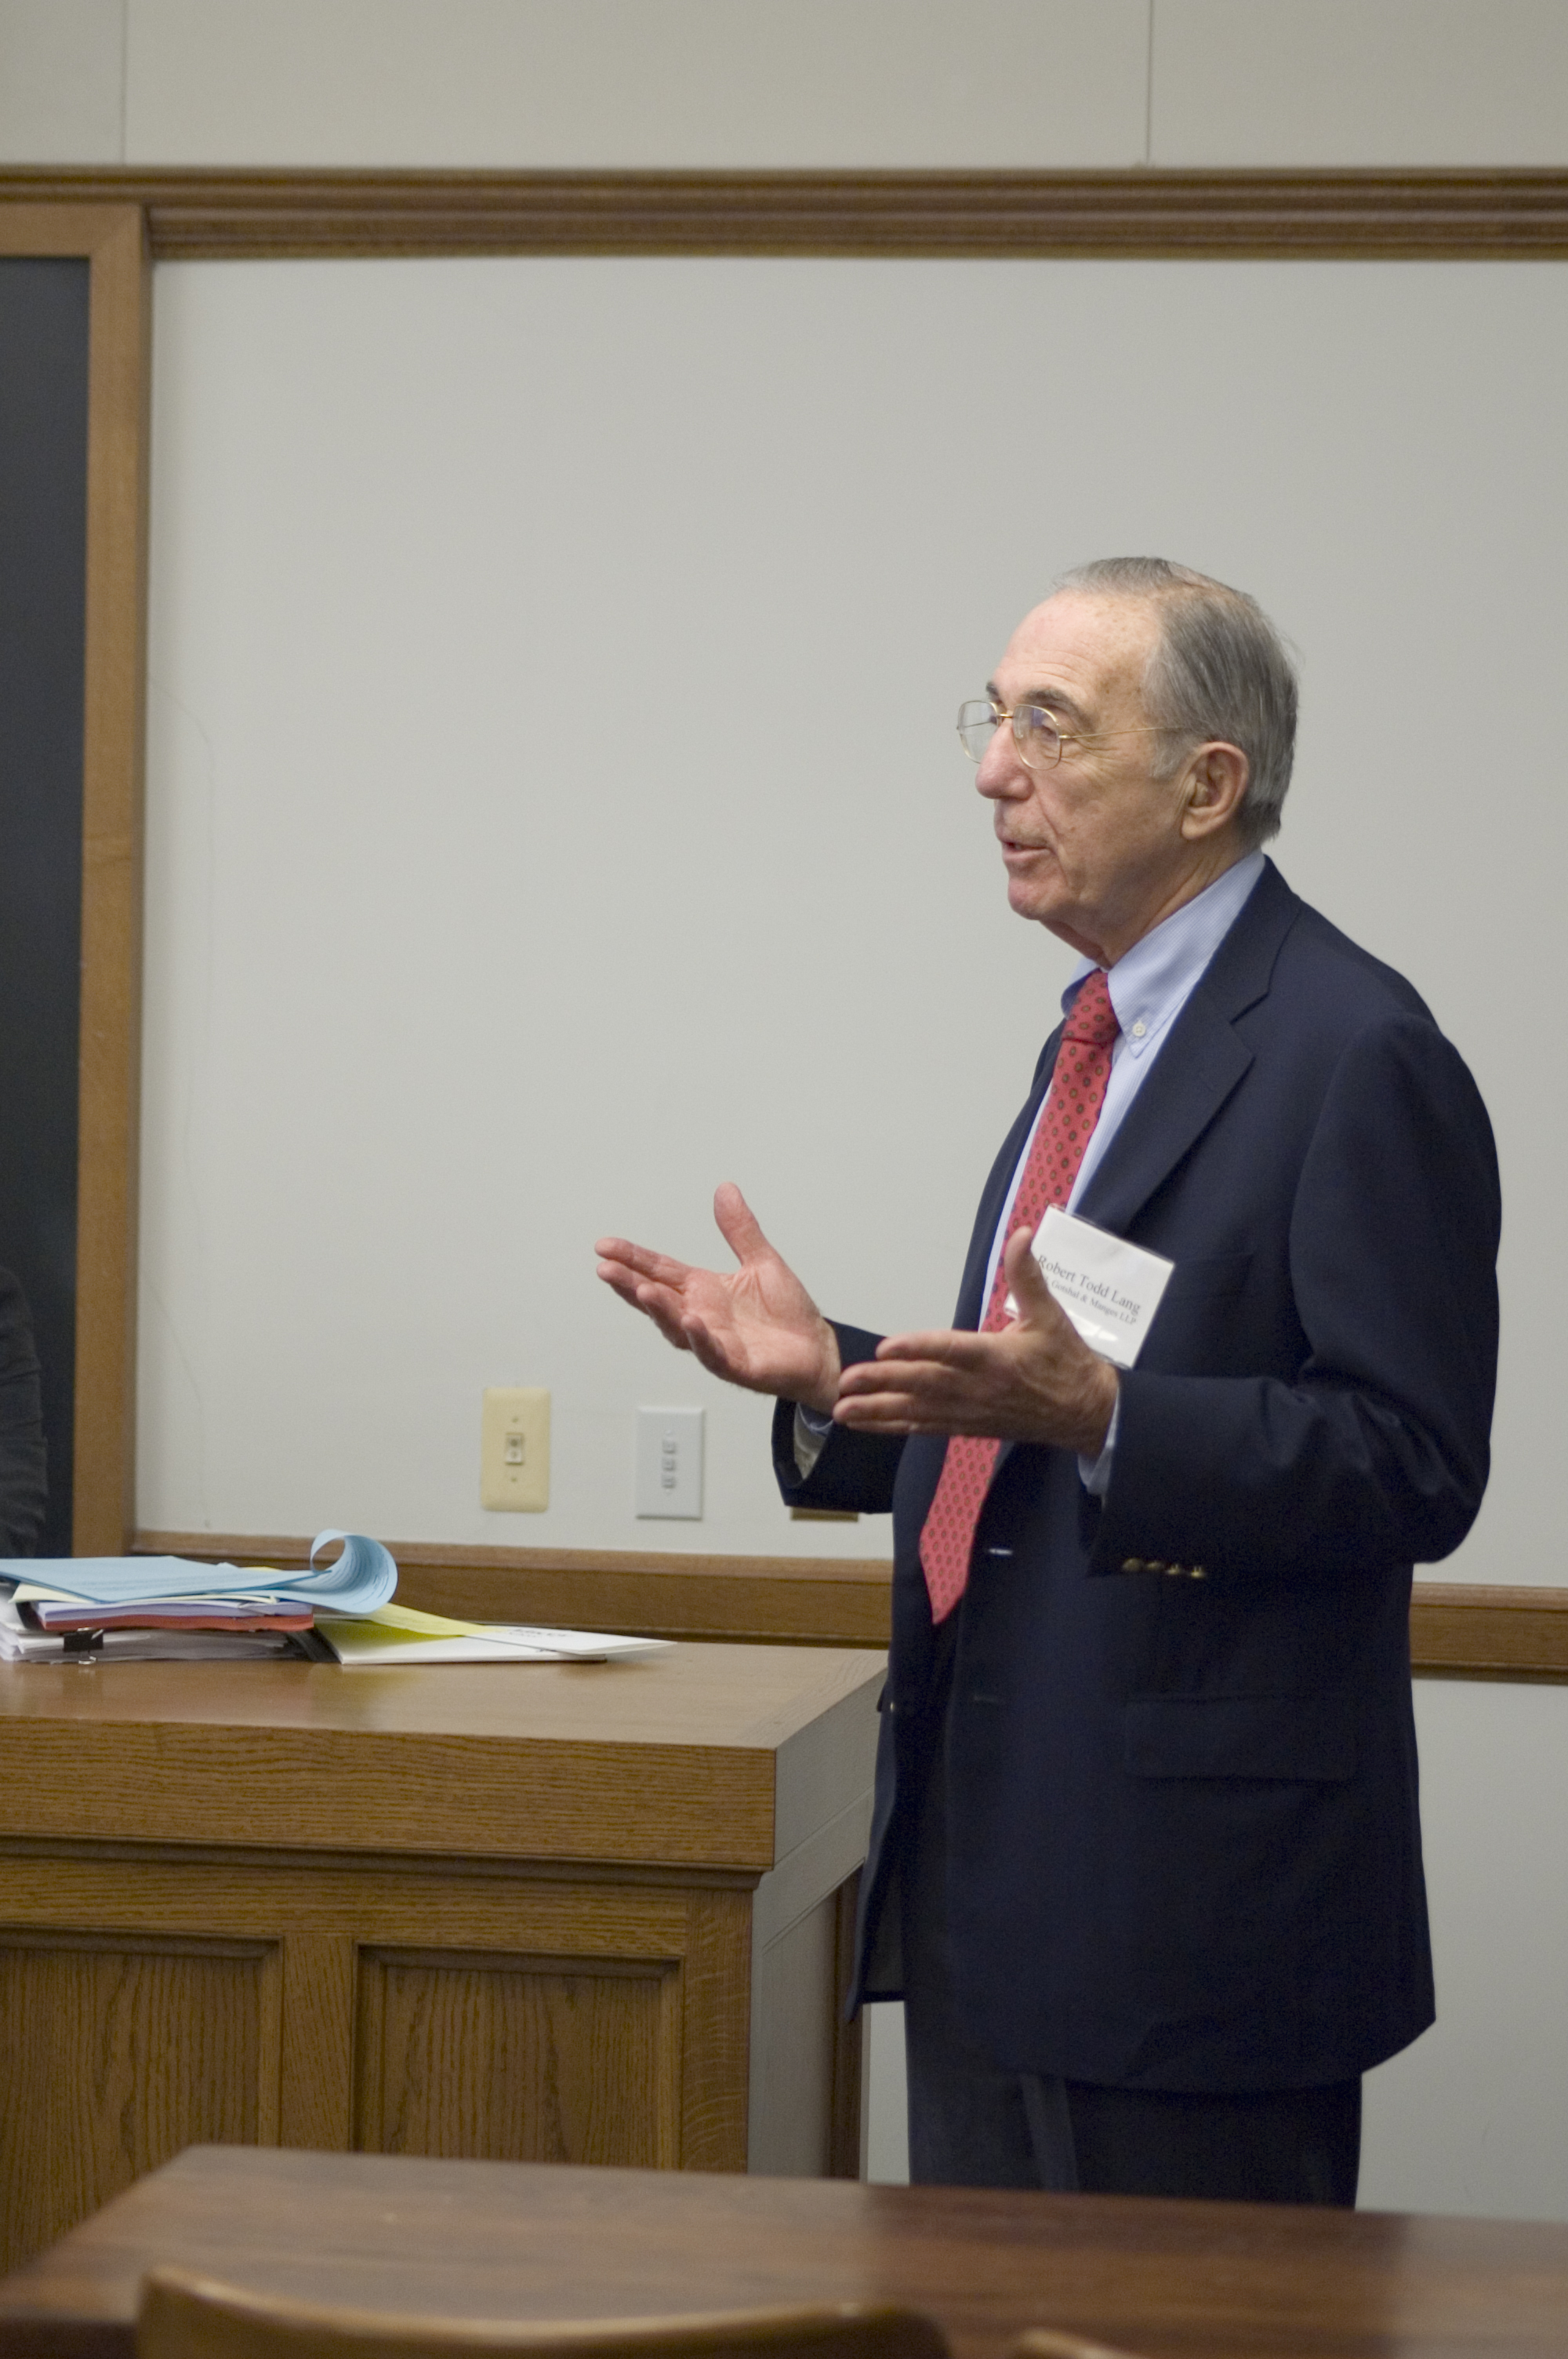 Robert Todd Lang '47 welcomes Roundtable participants